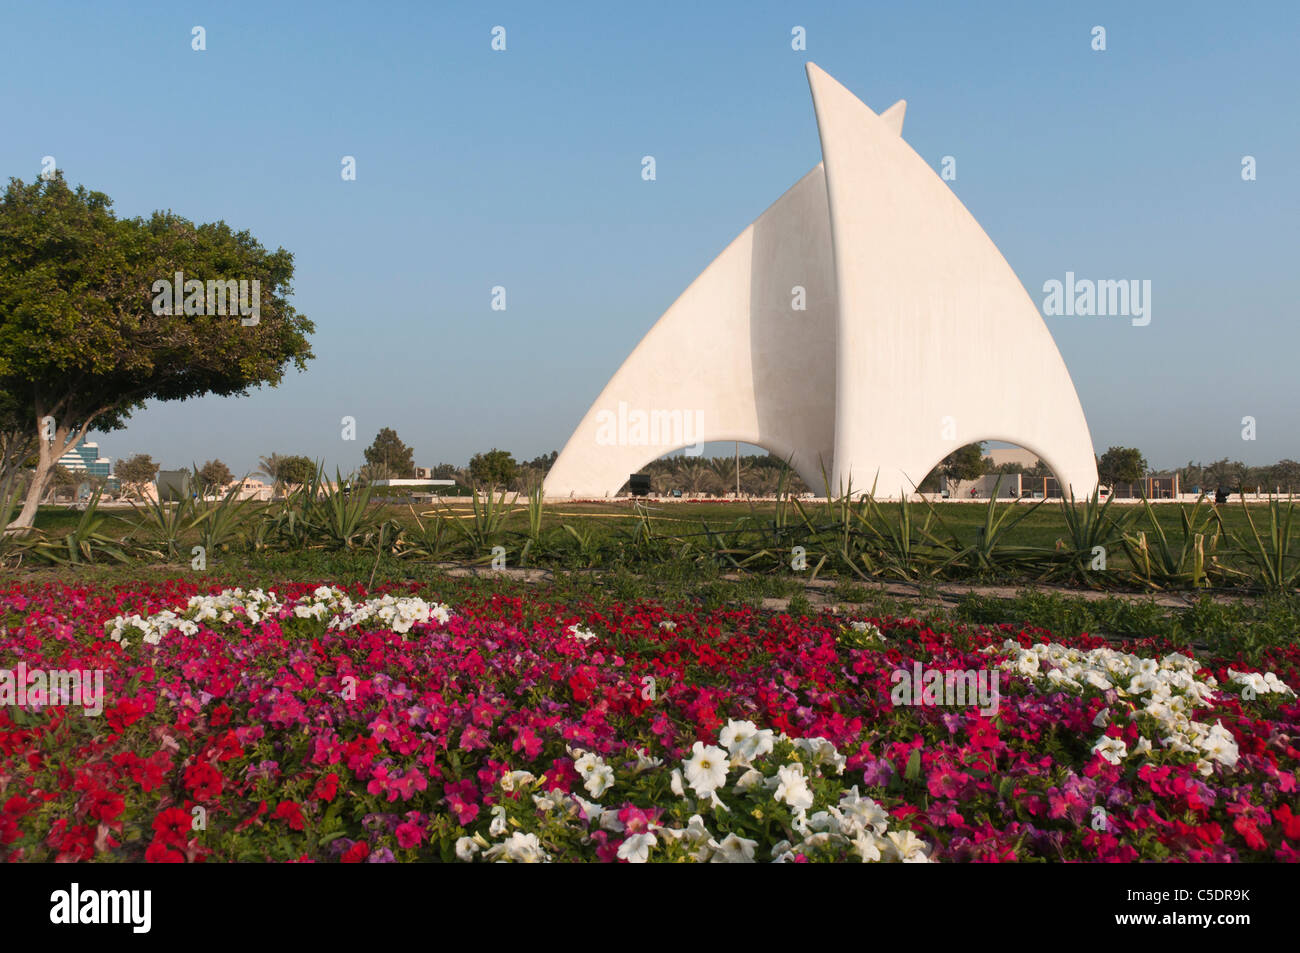 Elk204-1058 Bahrain, Manama, downtown, Sail Monument - Stock Image